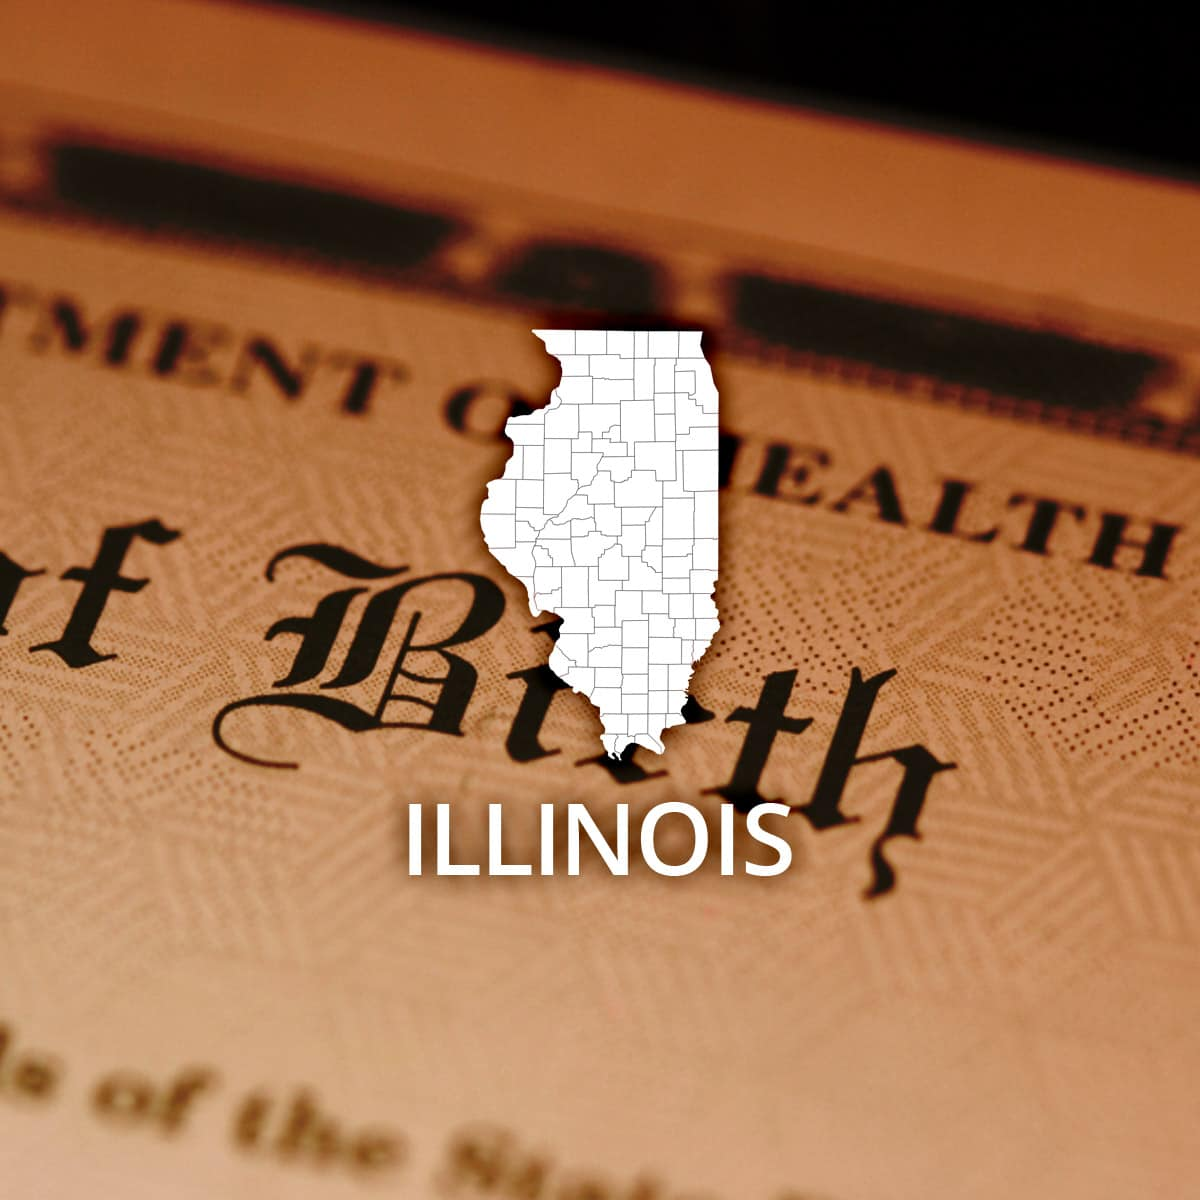 Where to Obtain an Illinois Birth Certificate